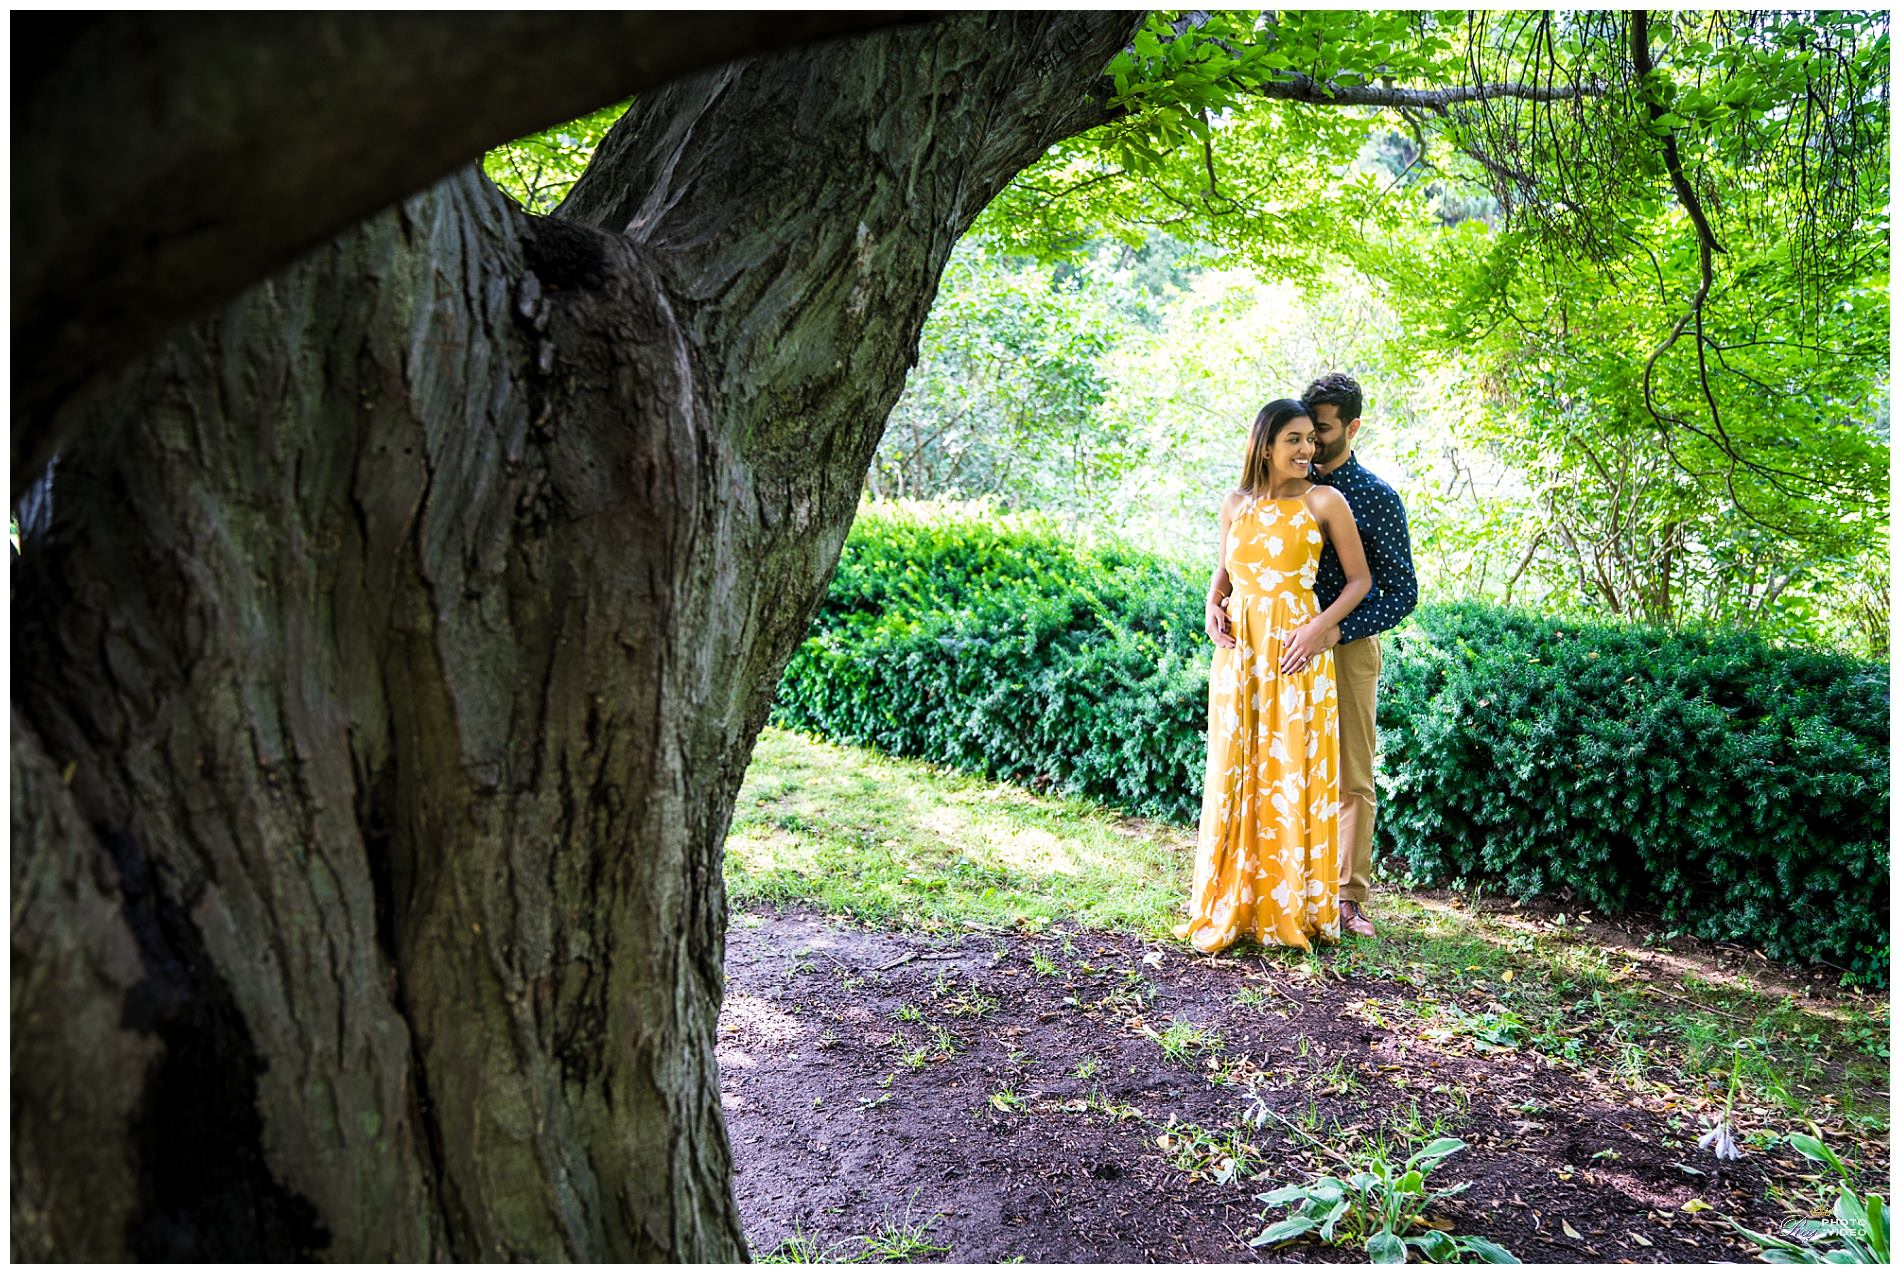 Elizabeth-Park-Rose-Garden-Hartford-CT-Engagement-Shoot-Pratiti-Suraj-22.jpg